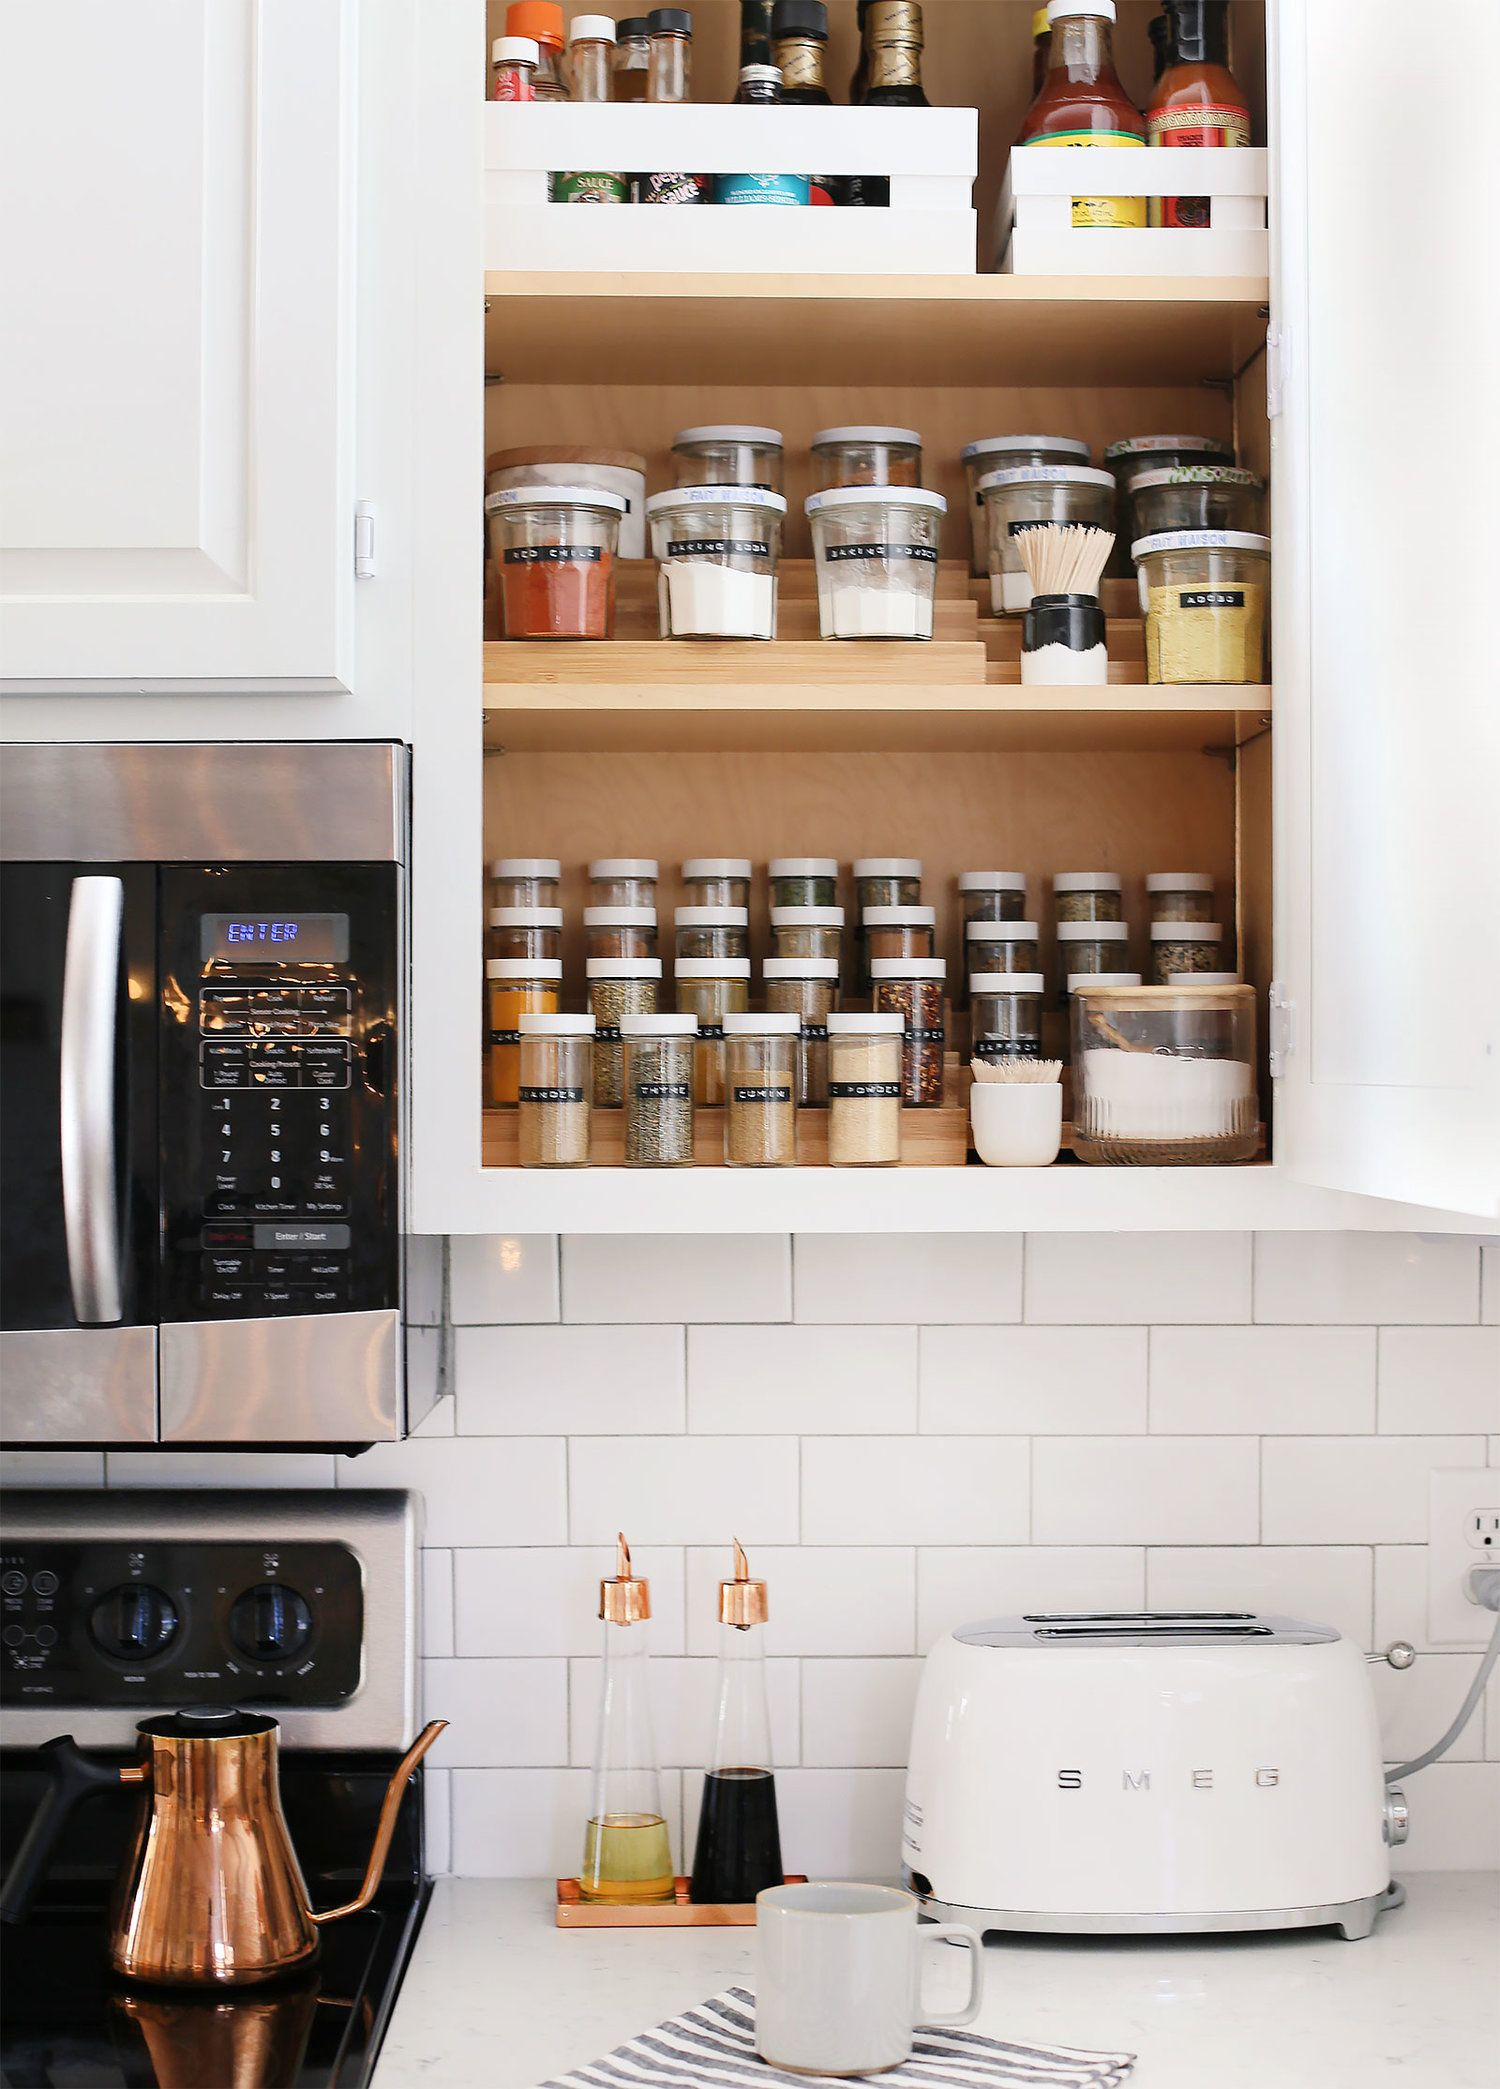 5 tips to easily organize your spice cabinet kitchen cabinet organization kitchen on kitchen cabinets organization layout id=48713